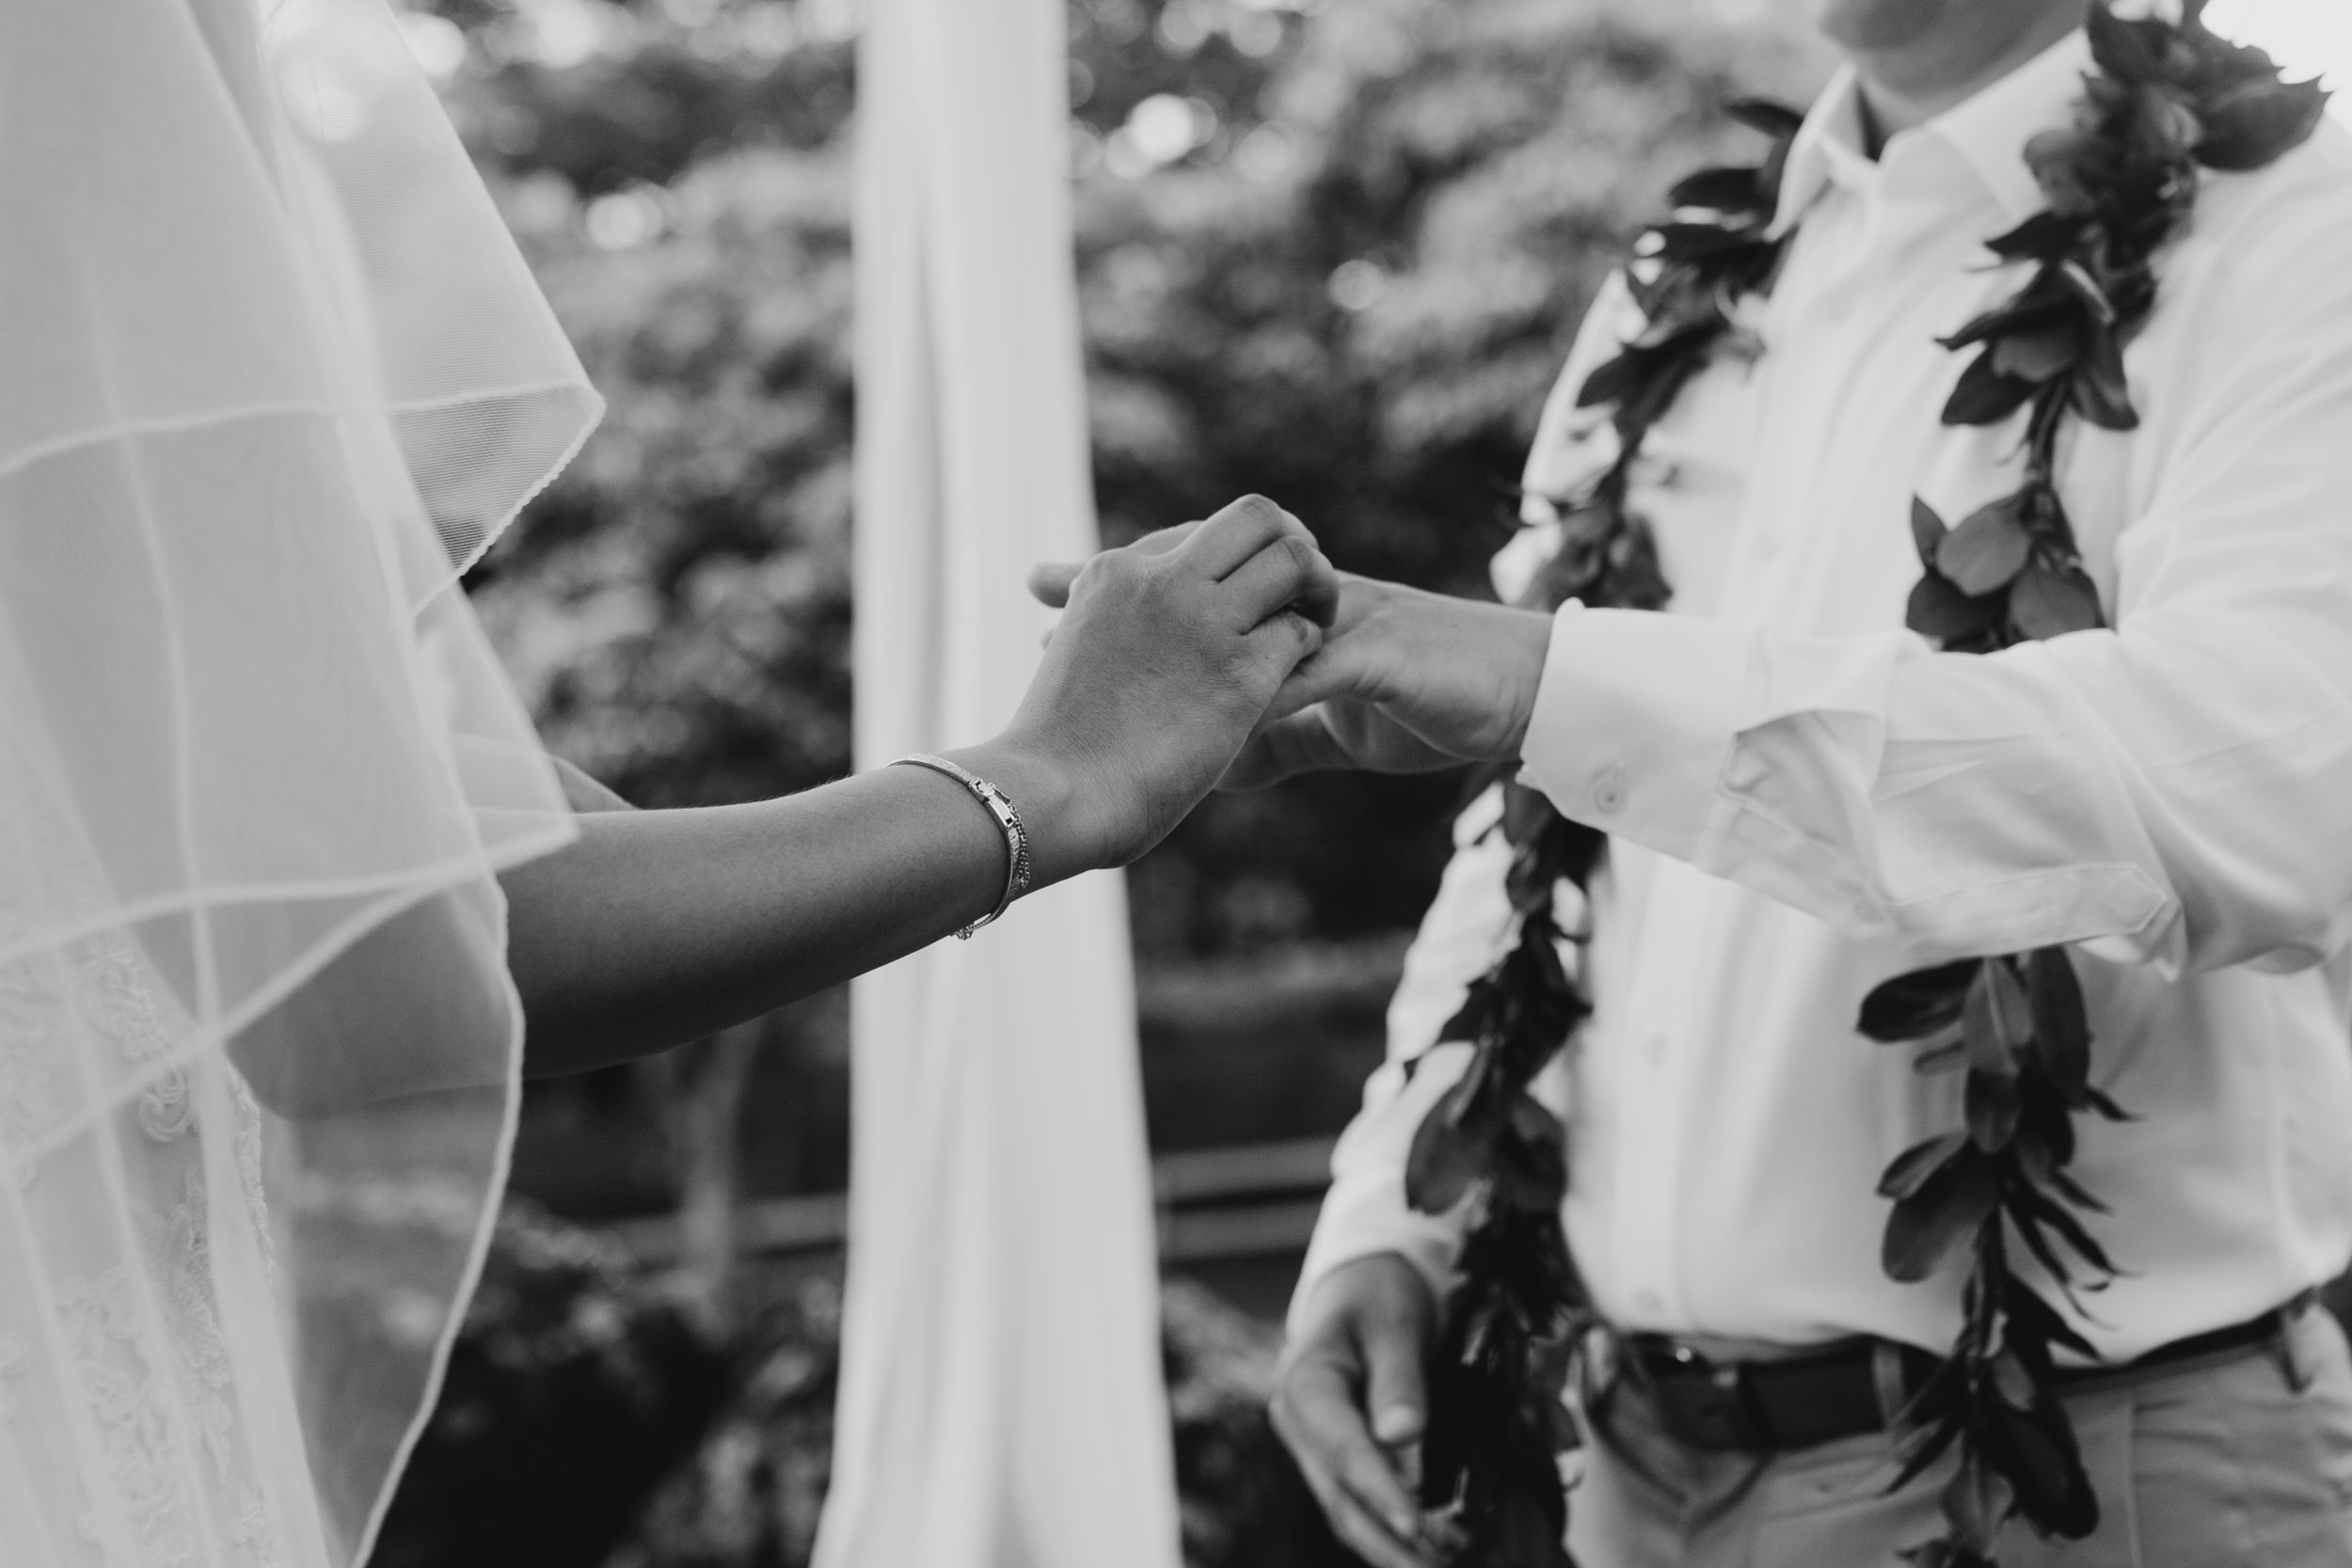 Exchange of wedding rings at Kualoa Ranch Paliku Gardens. Photography by Hawaii wedding photographer Desiree Leilani